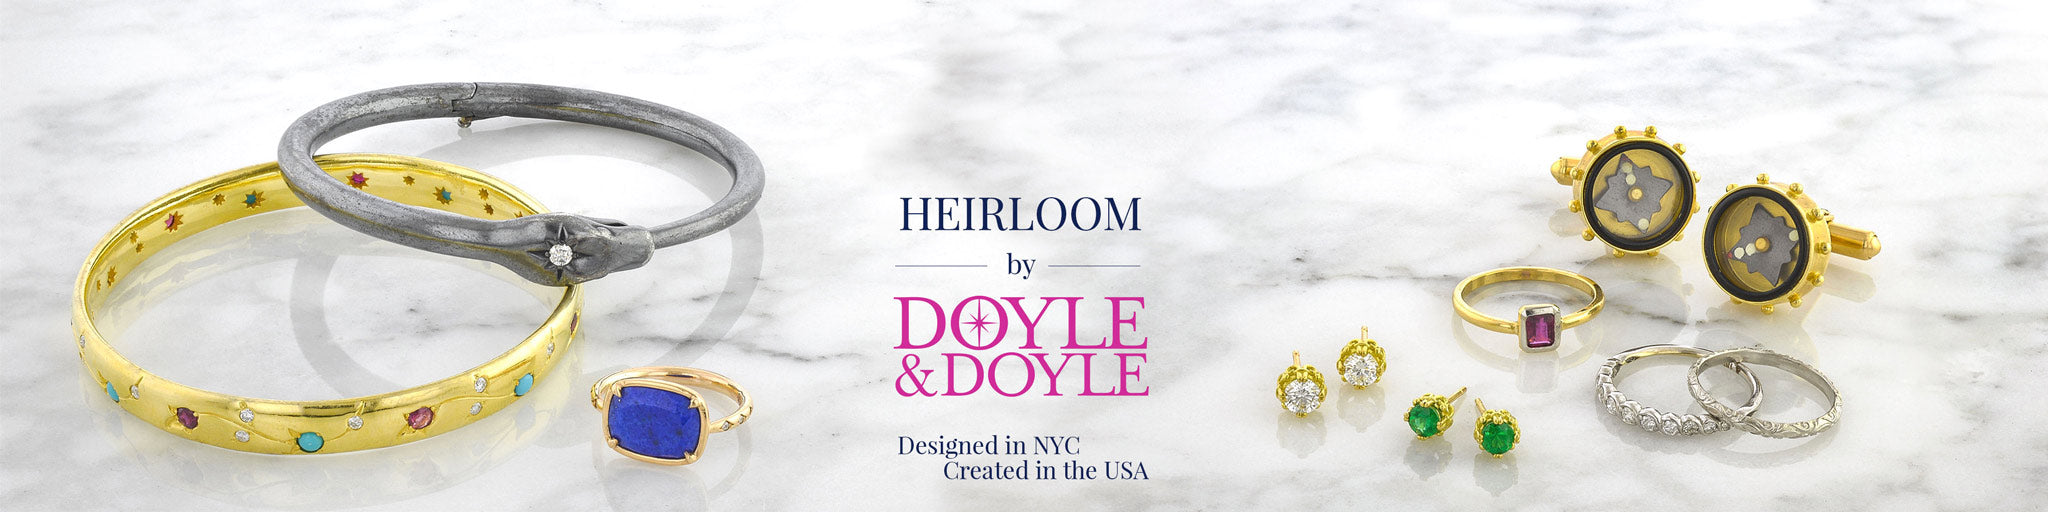 Heirloom by Doyle & Doyle